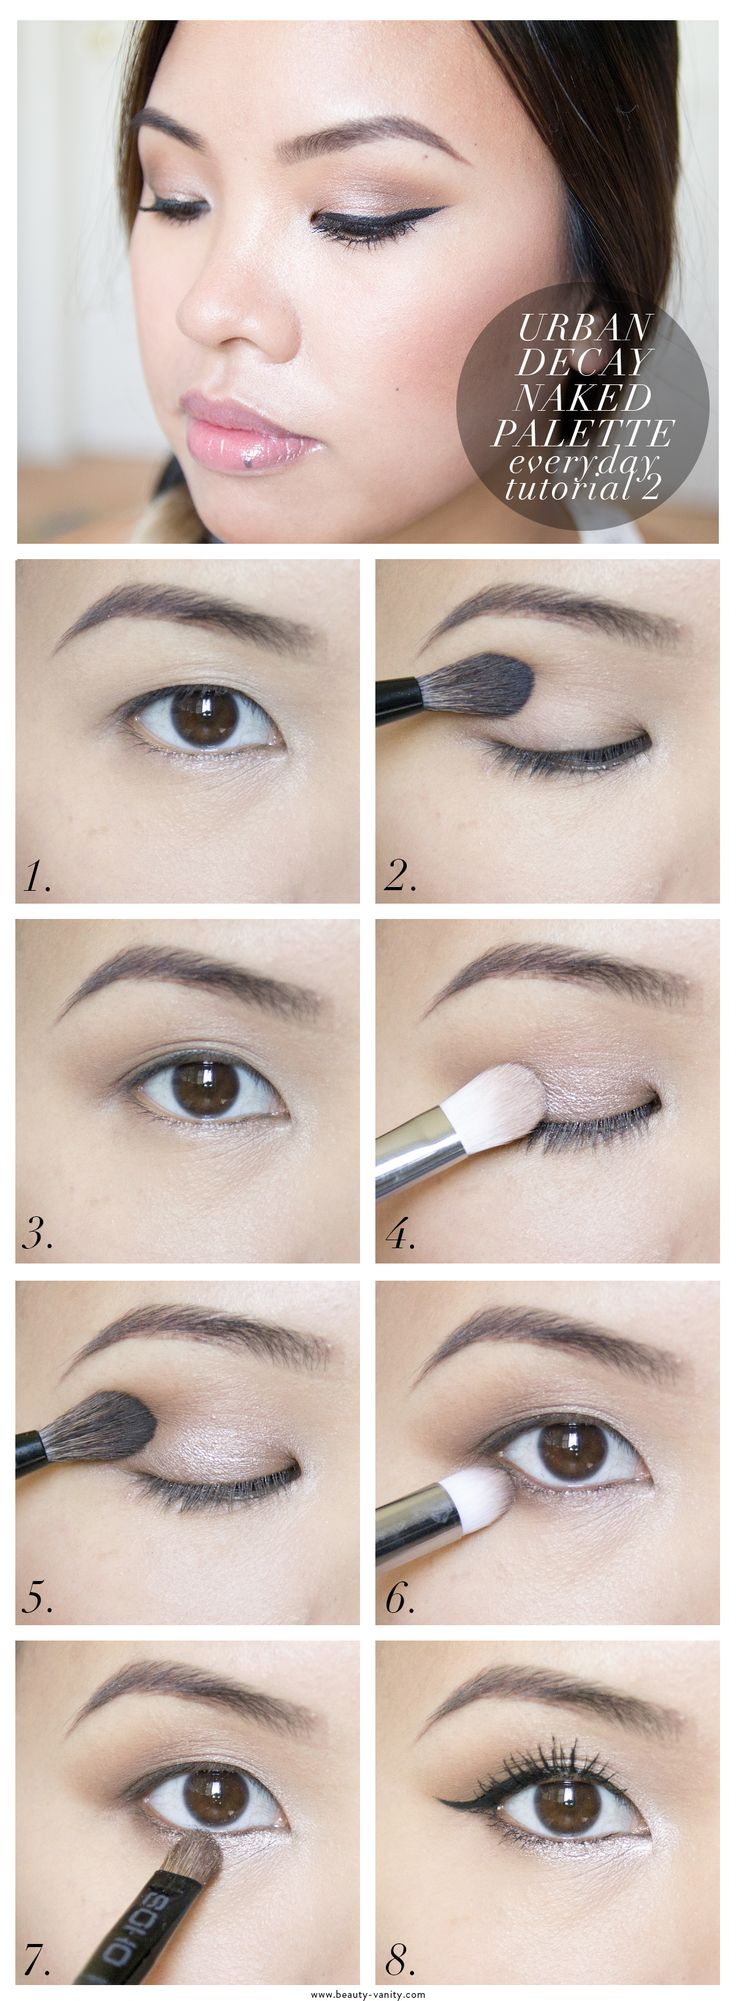 The Beauty Vanity | Urban Decay Naked Palette Everyday Makeup Tutorial 2 for Asian Eyes